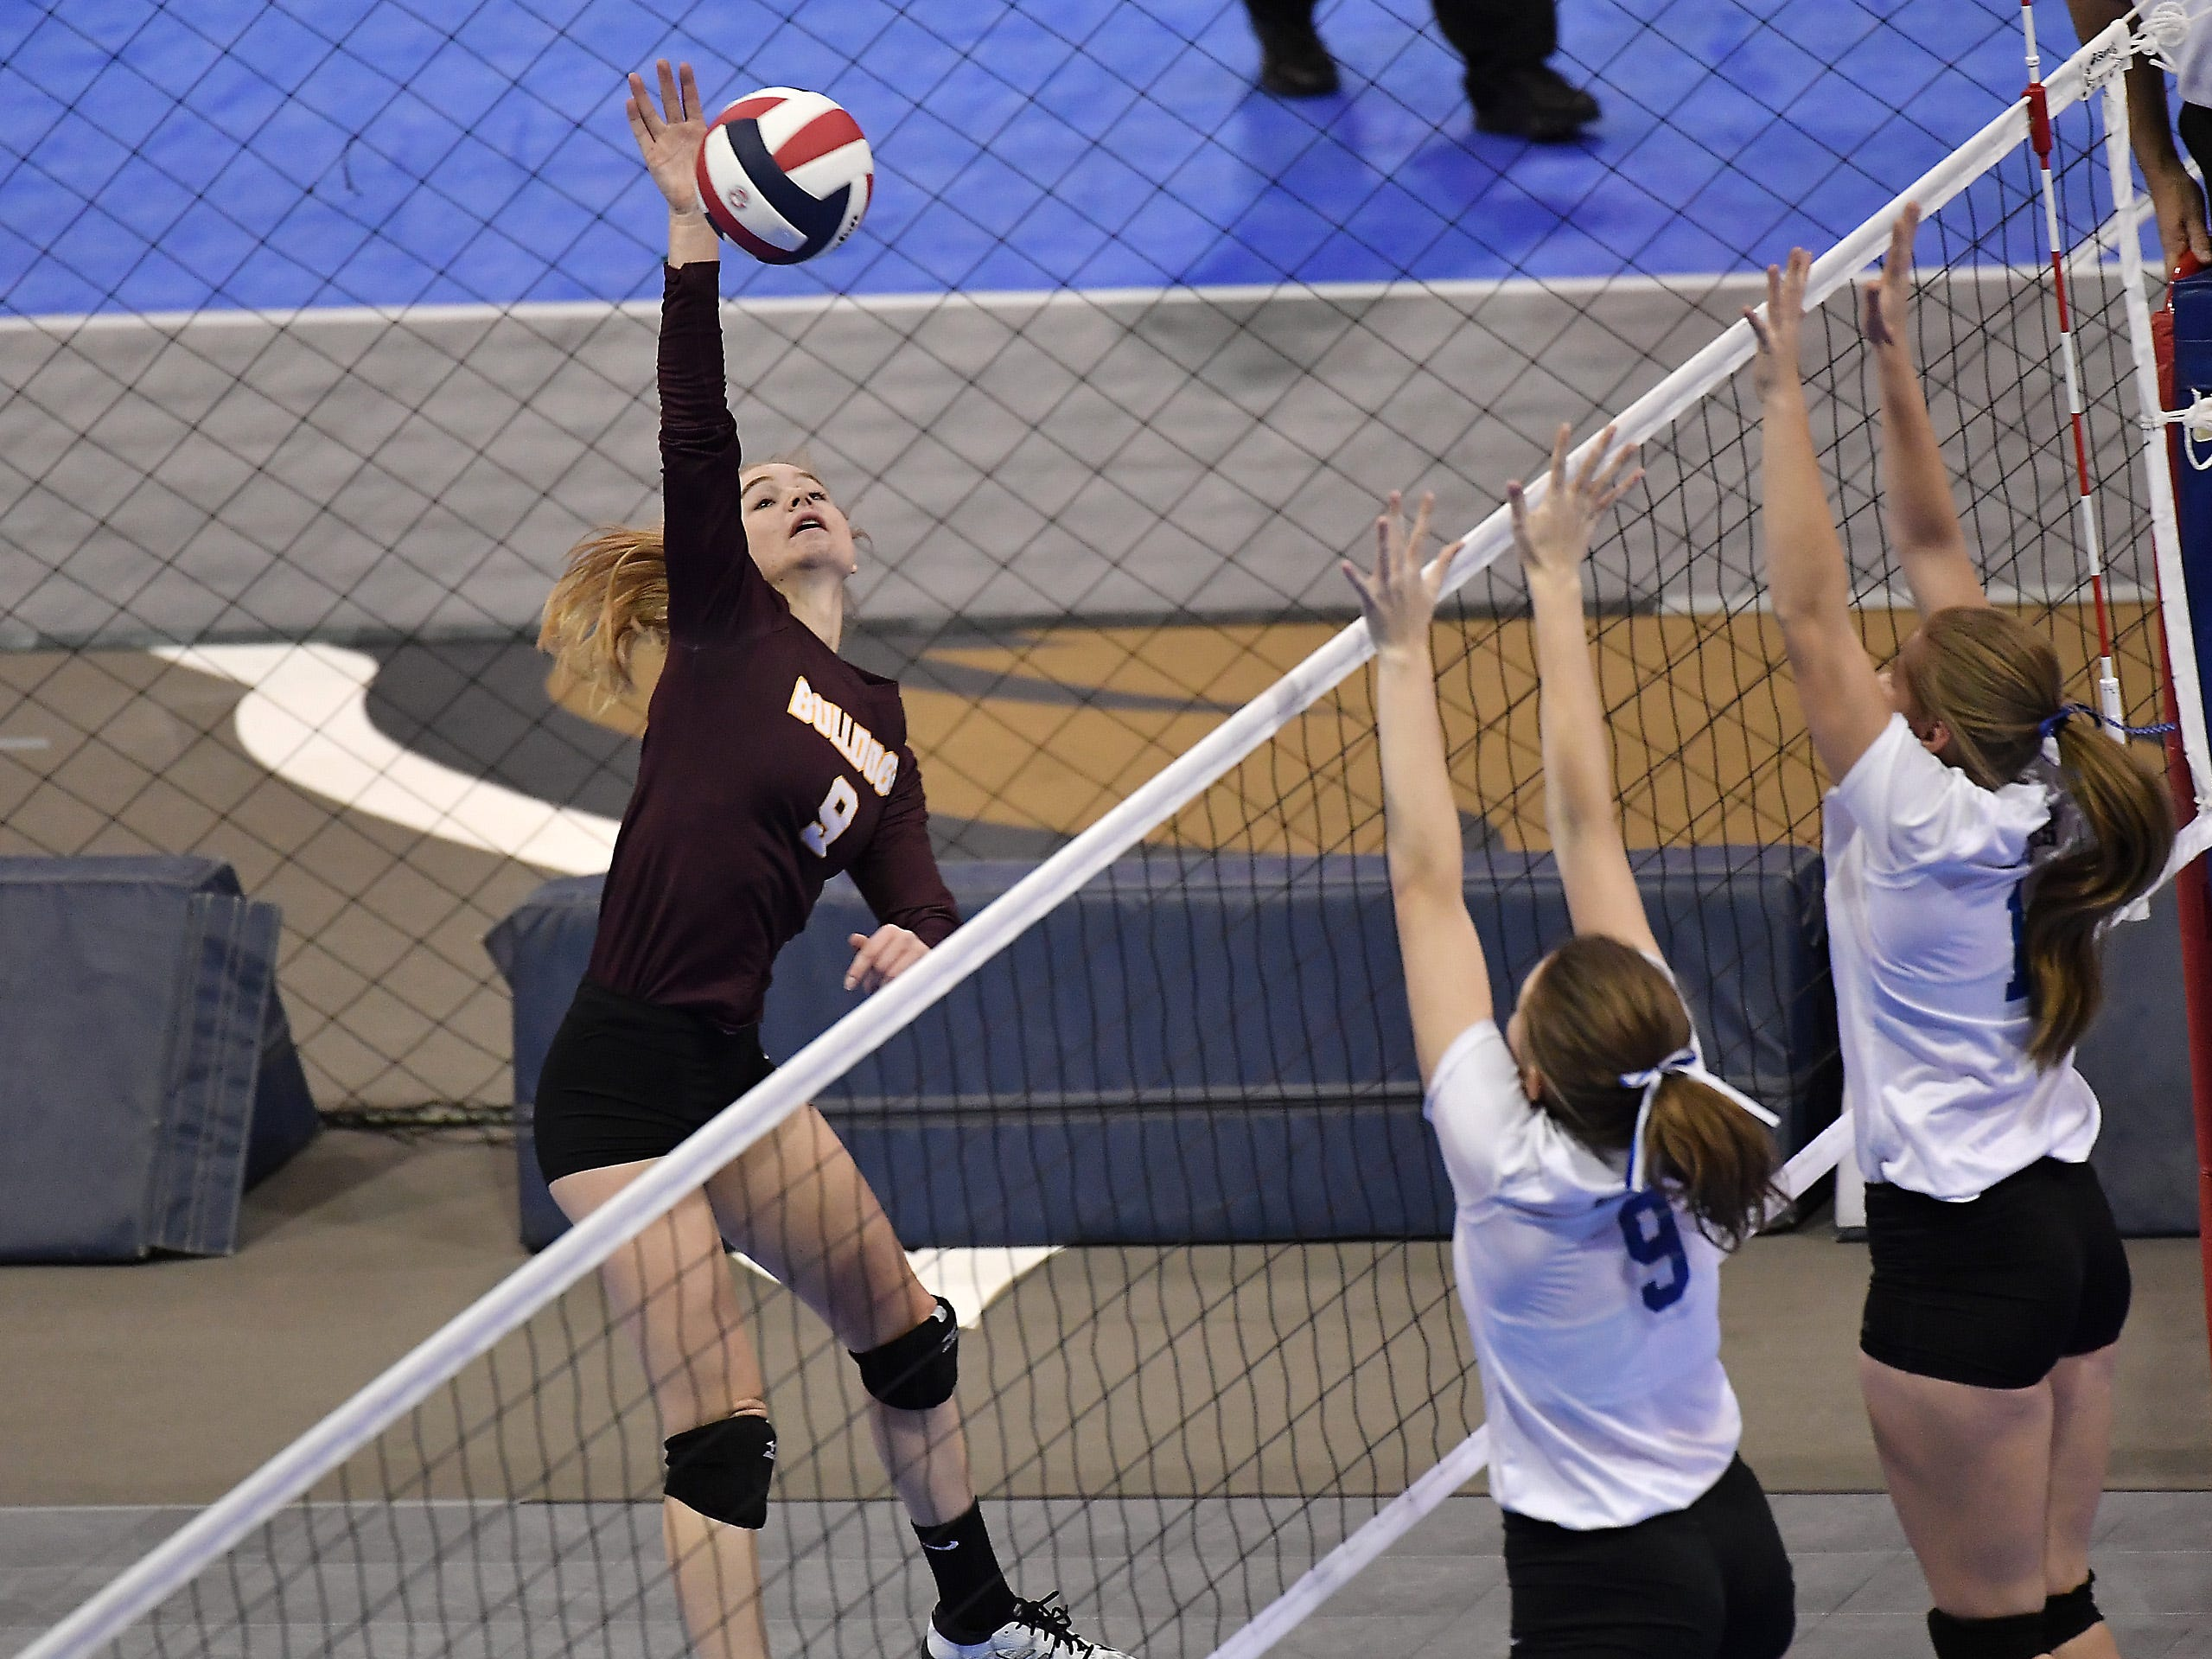 Nicole Krone of Choteau (9) spikes the ball in a match against Fairfield at the All-Class State Volleyball Tournament at the Brick Breeden Fieldhouse in Bozeman Friday.